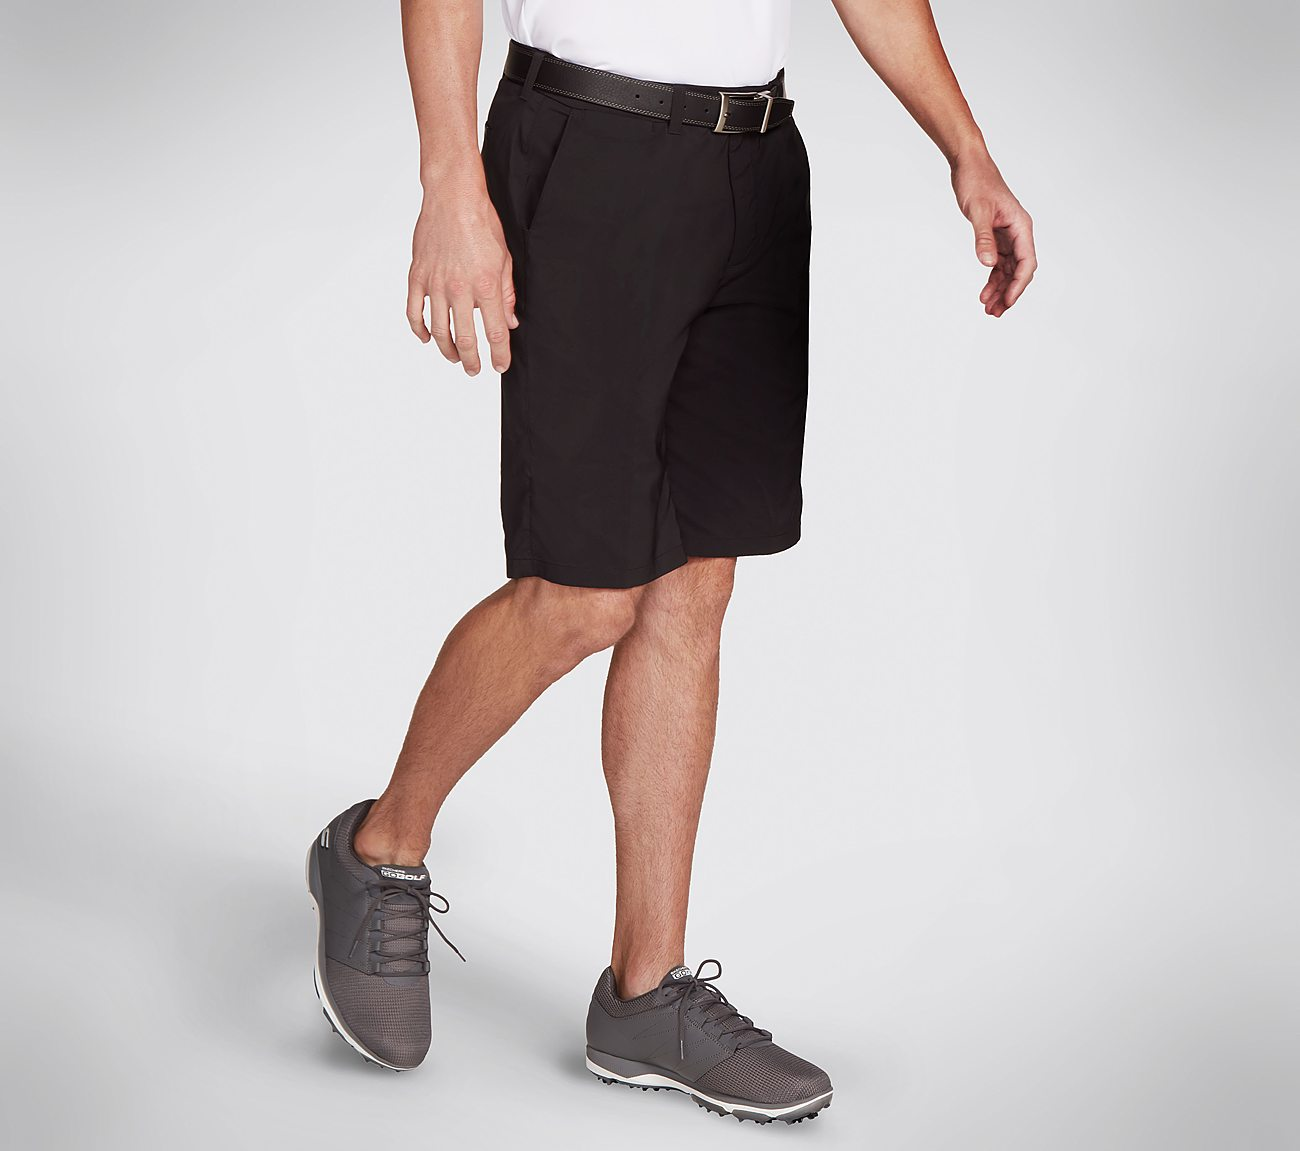 Skechers GO GOLF Mesa Chino Short II